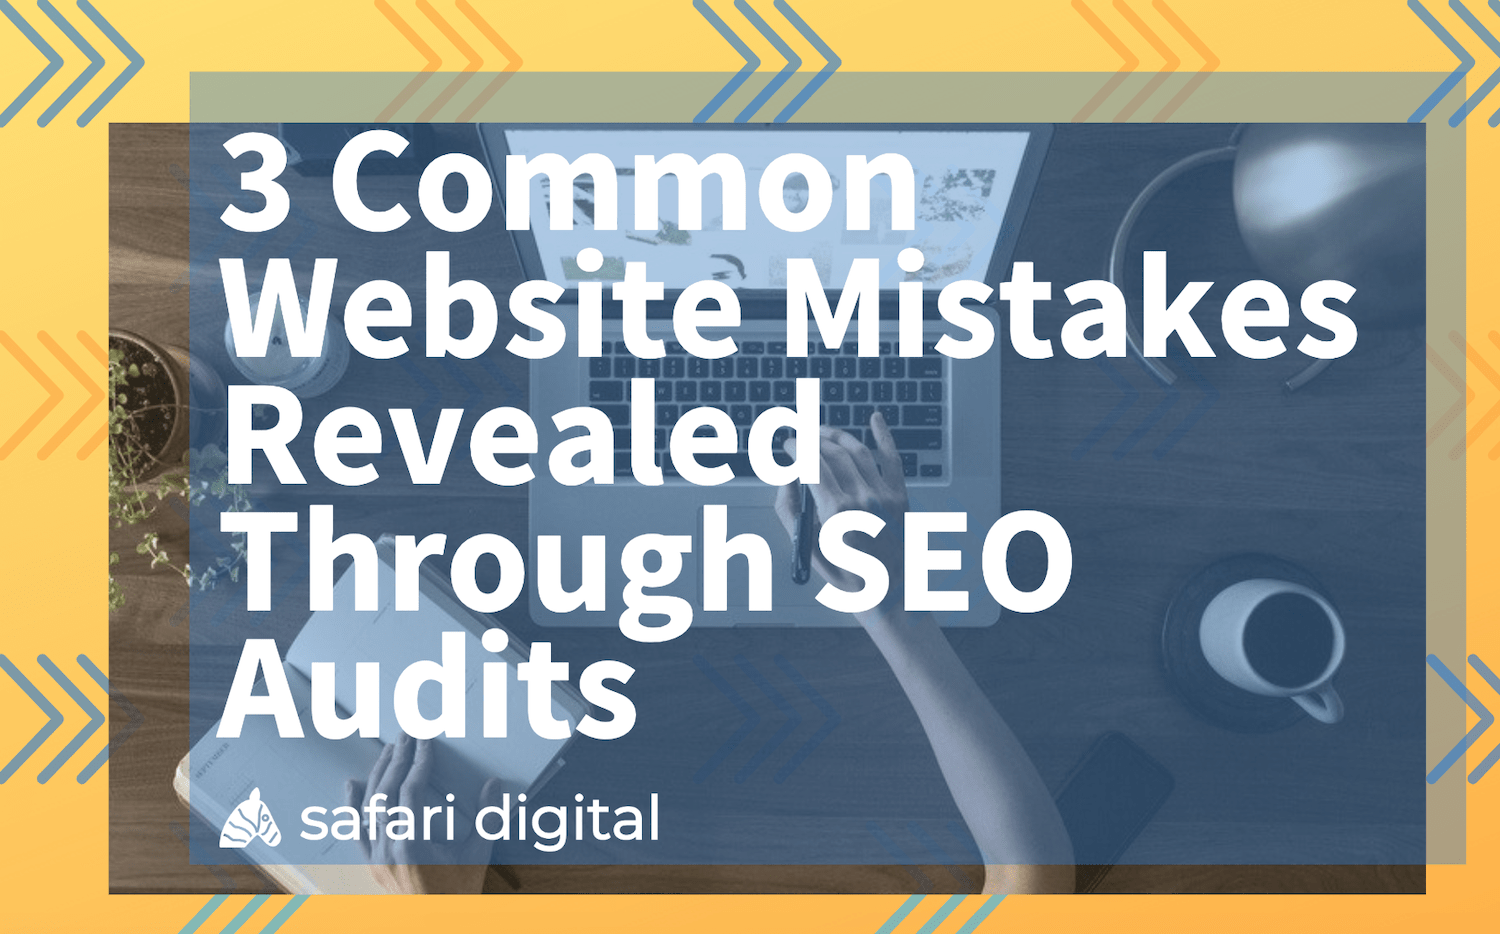 3 common website mistakes revealed through SEO audits banner image Large